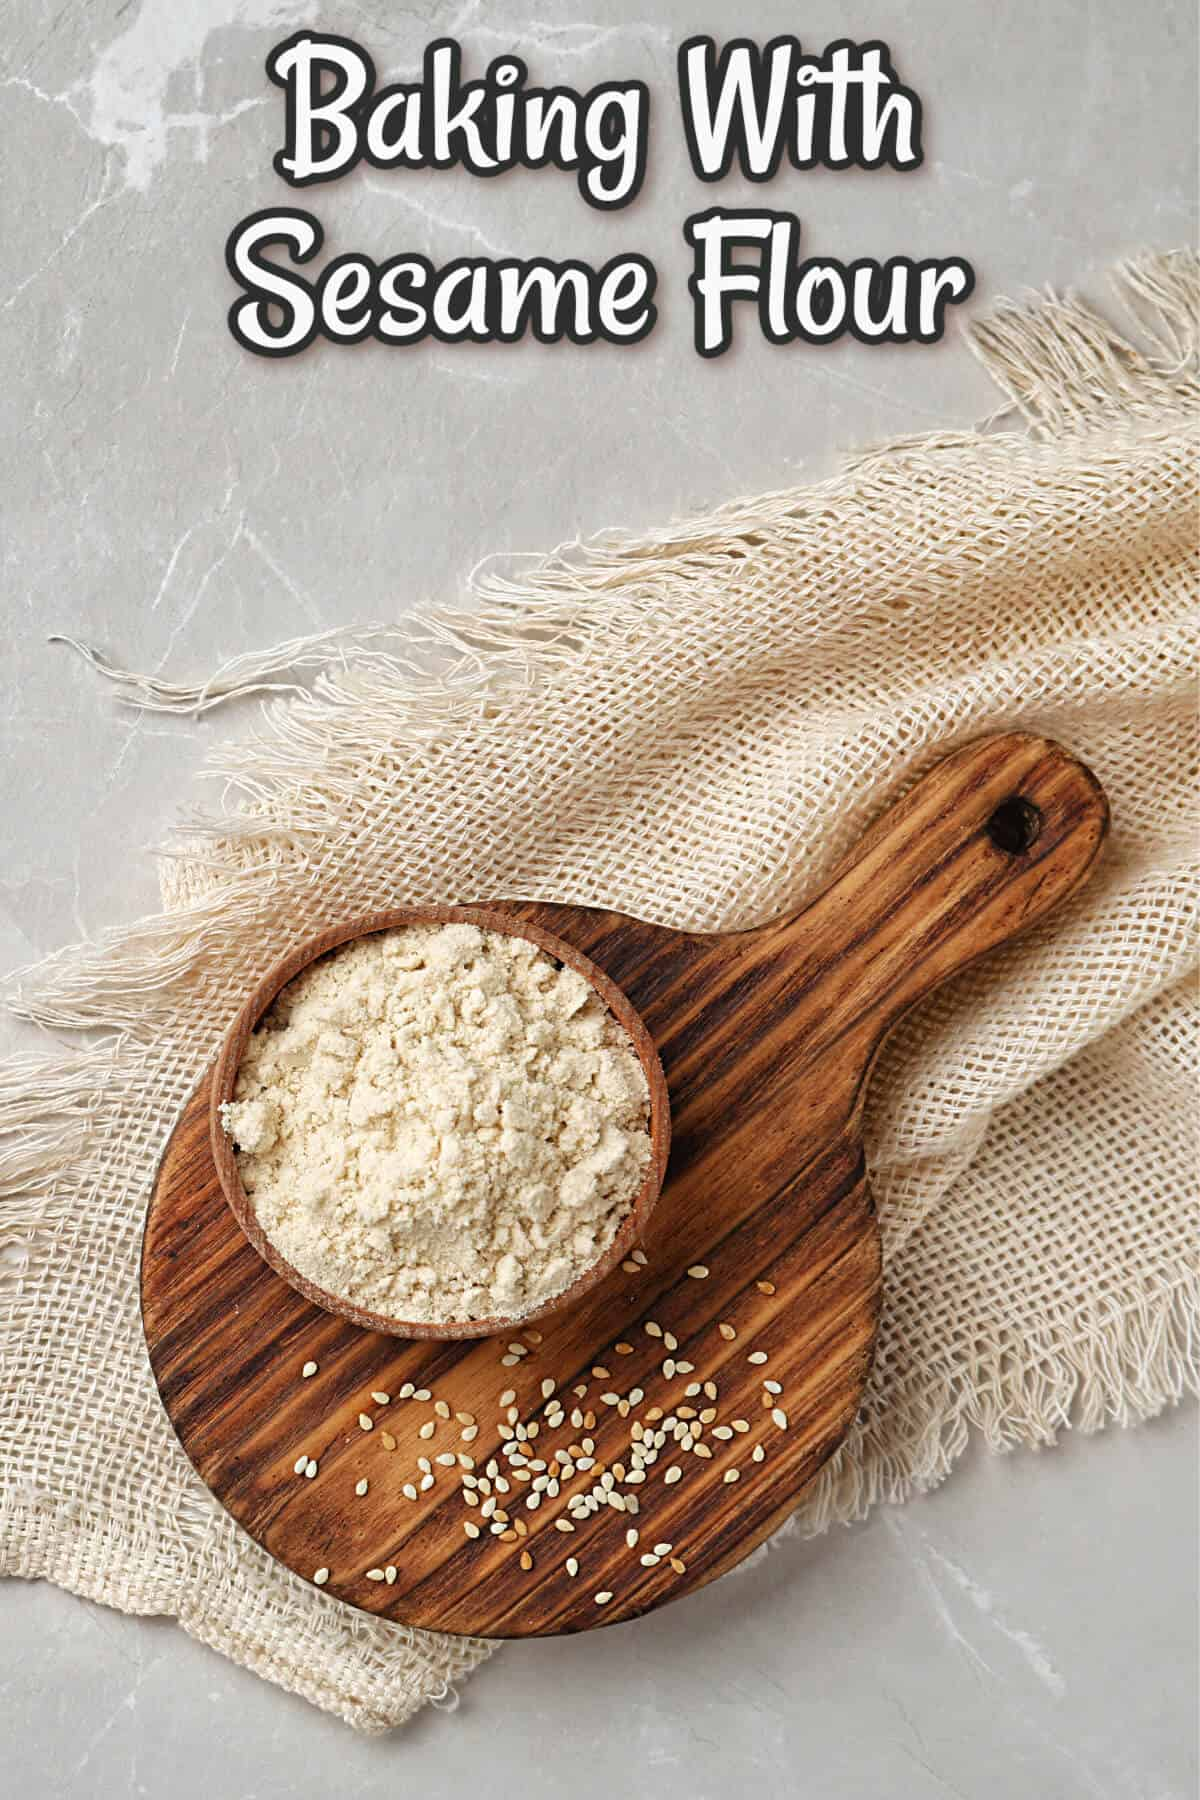 baking with sesame flour cover image